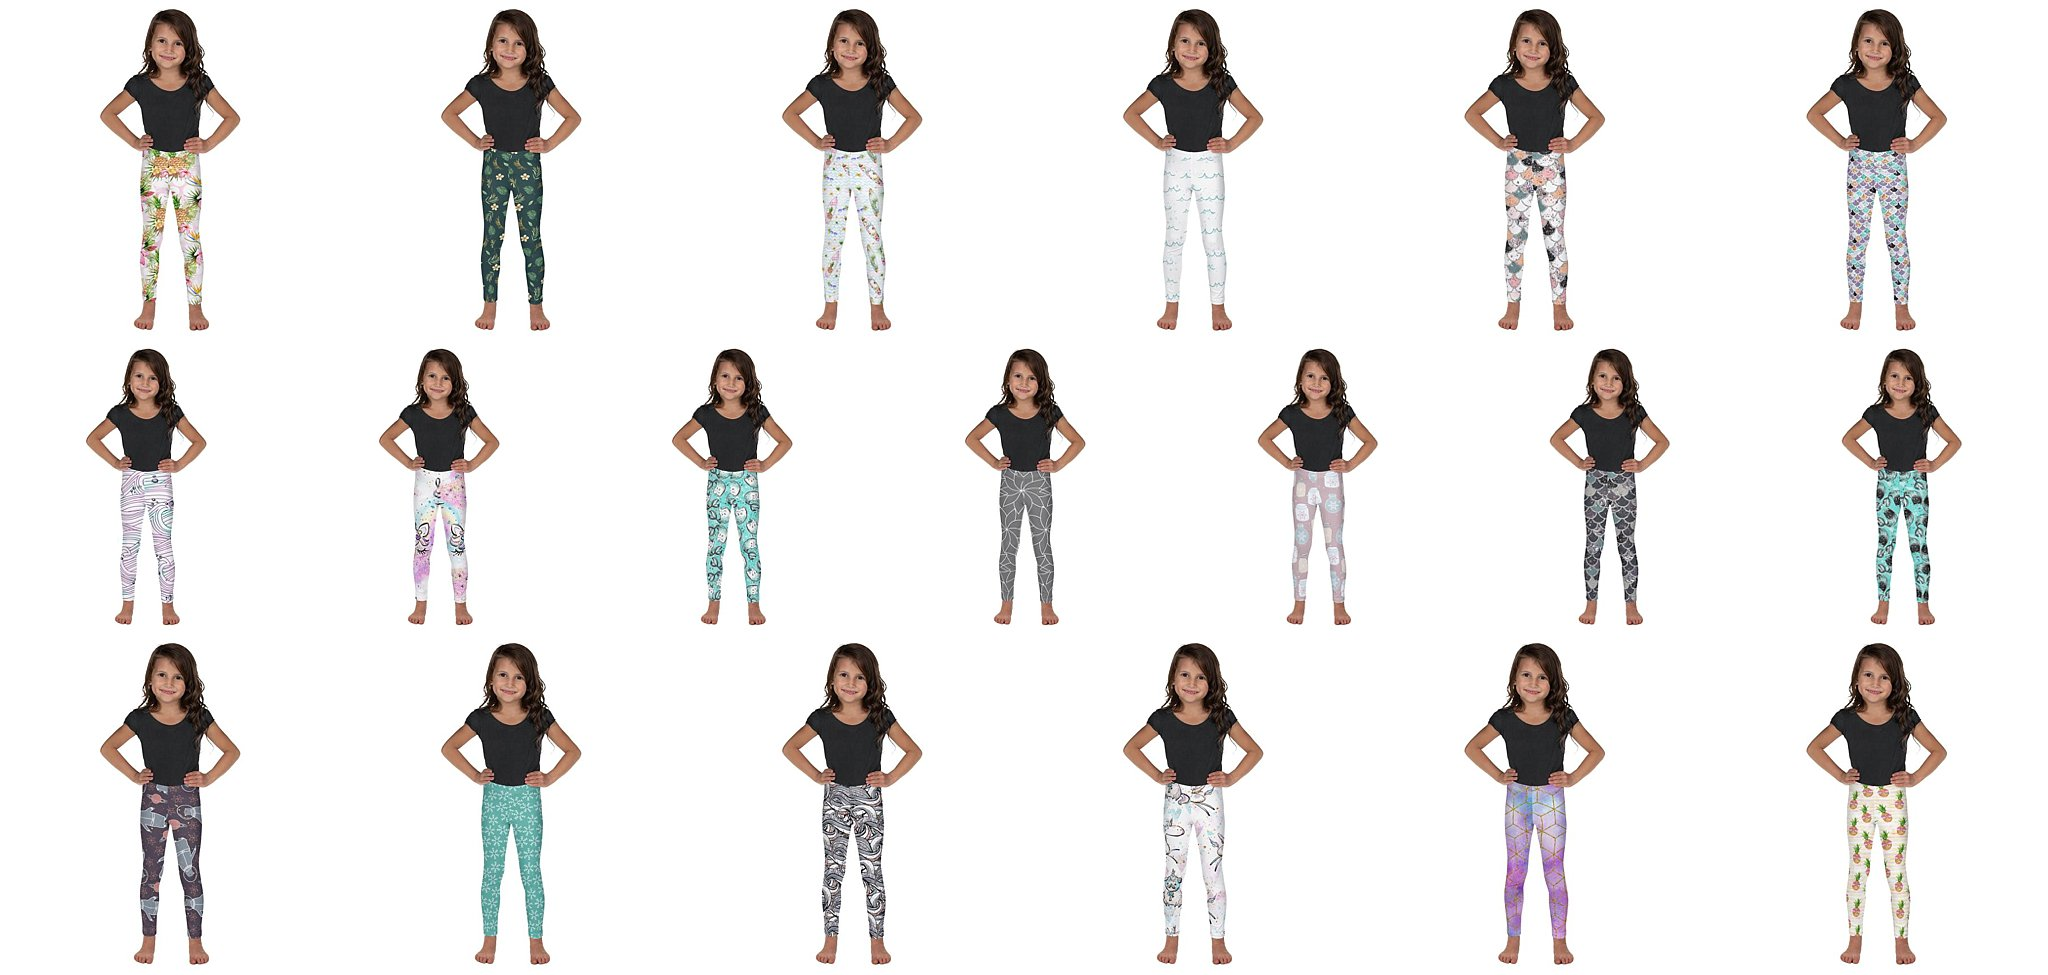 Kids leggings, OMG. For real, my kids are going NUTS over these.